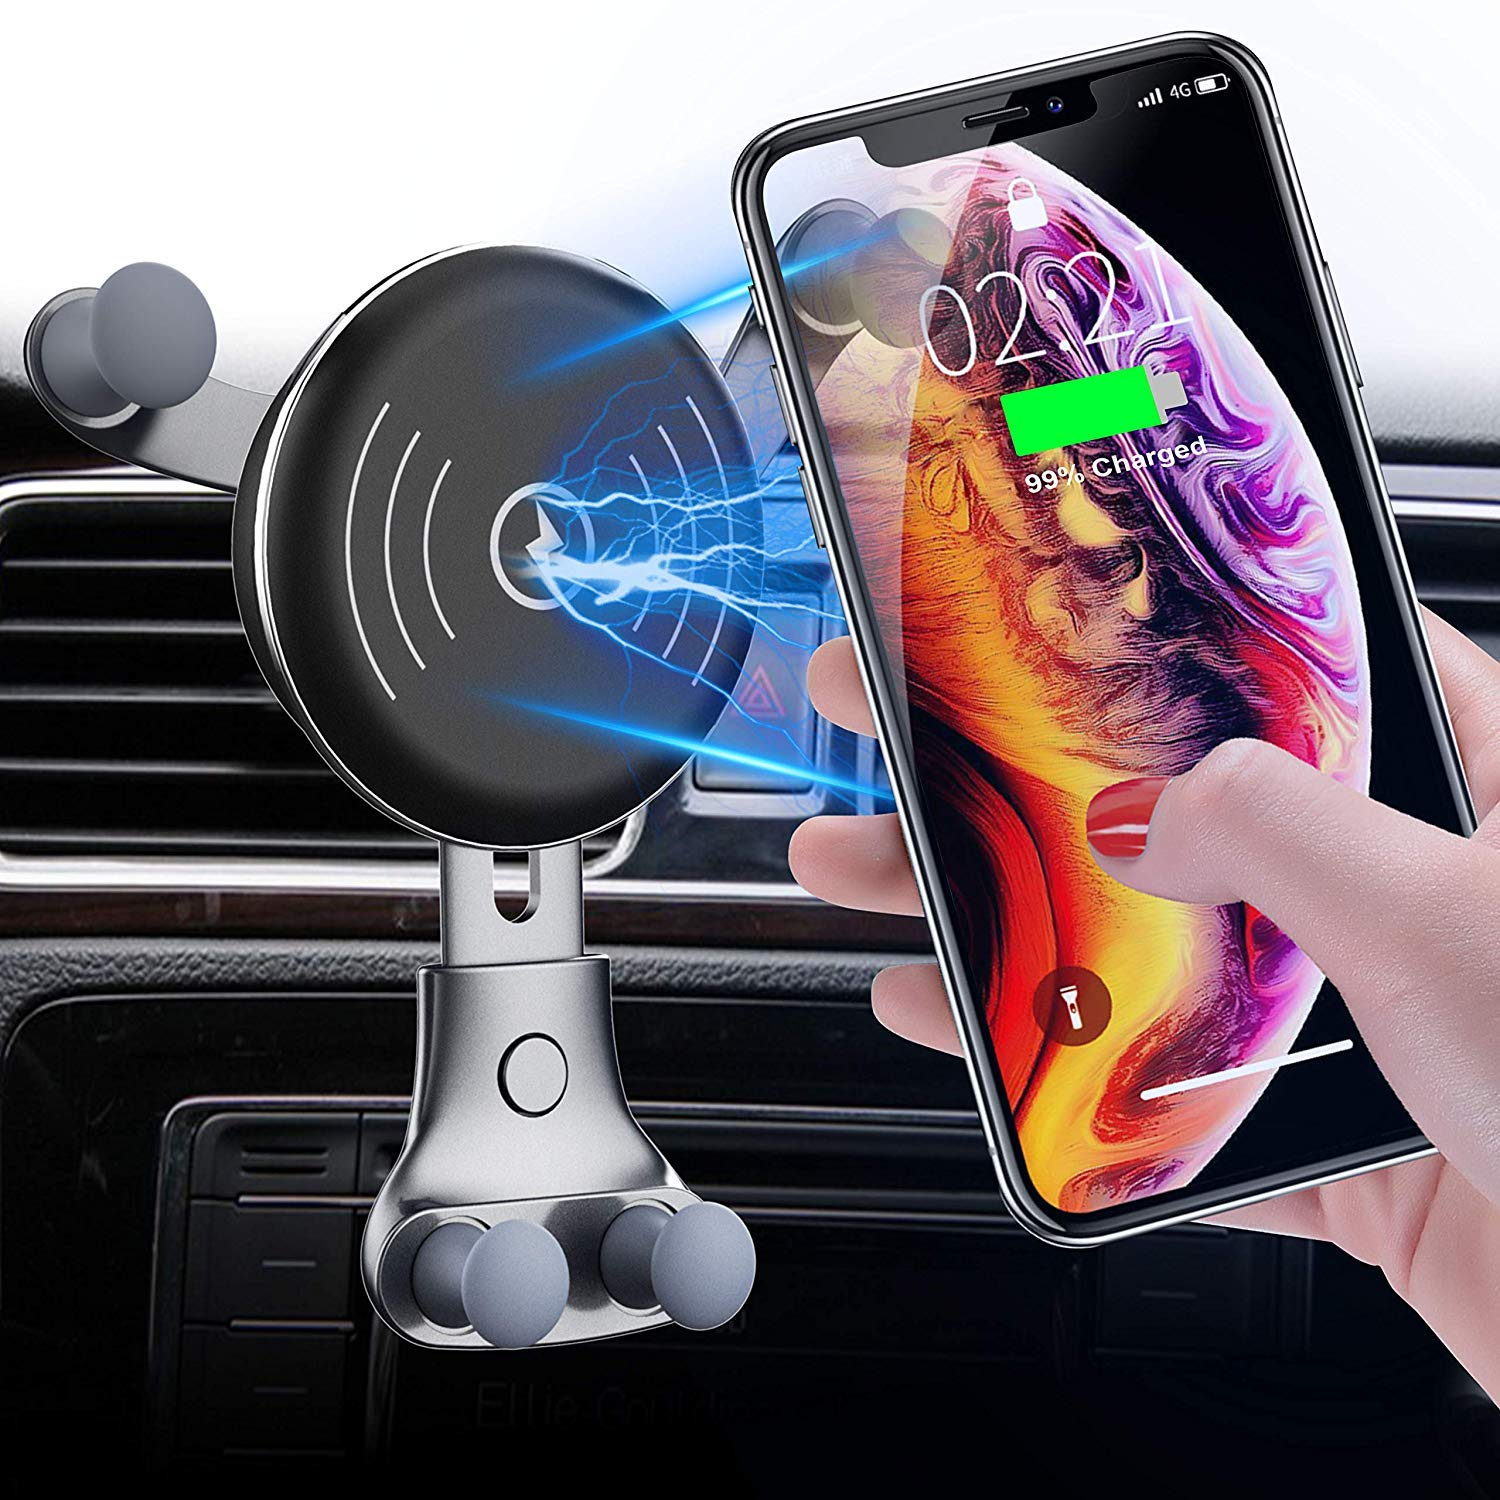 Car Charger, Air Vent Phone Holder, Wireless Car Kit, 10W Compatible for Samsung Galaxy S9 811recar24 by BESTHING